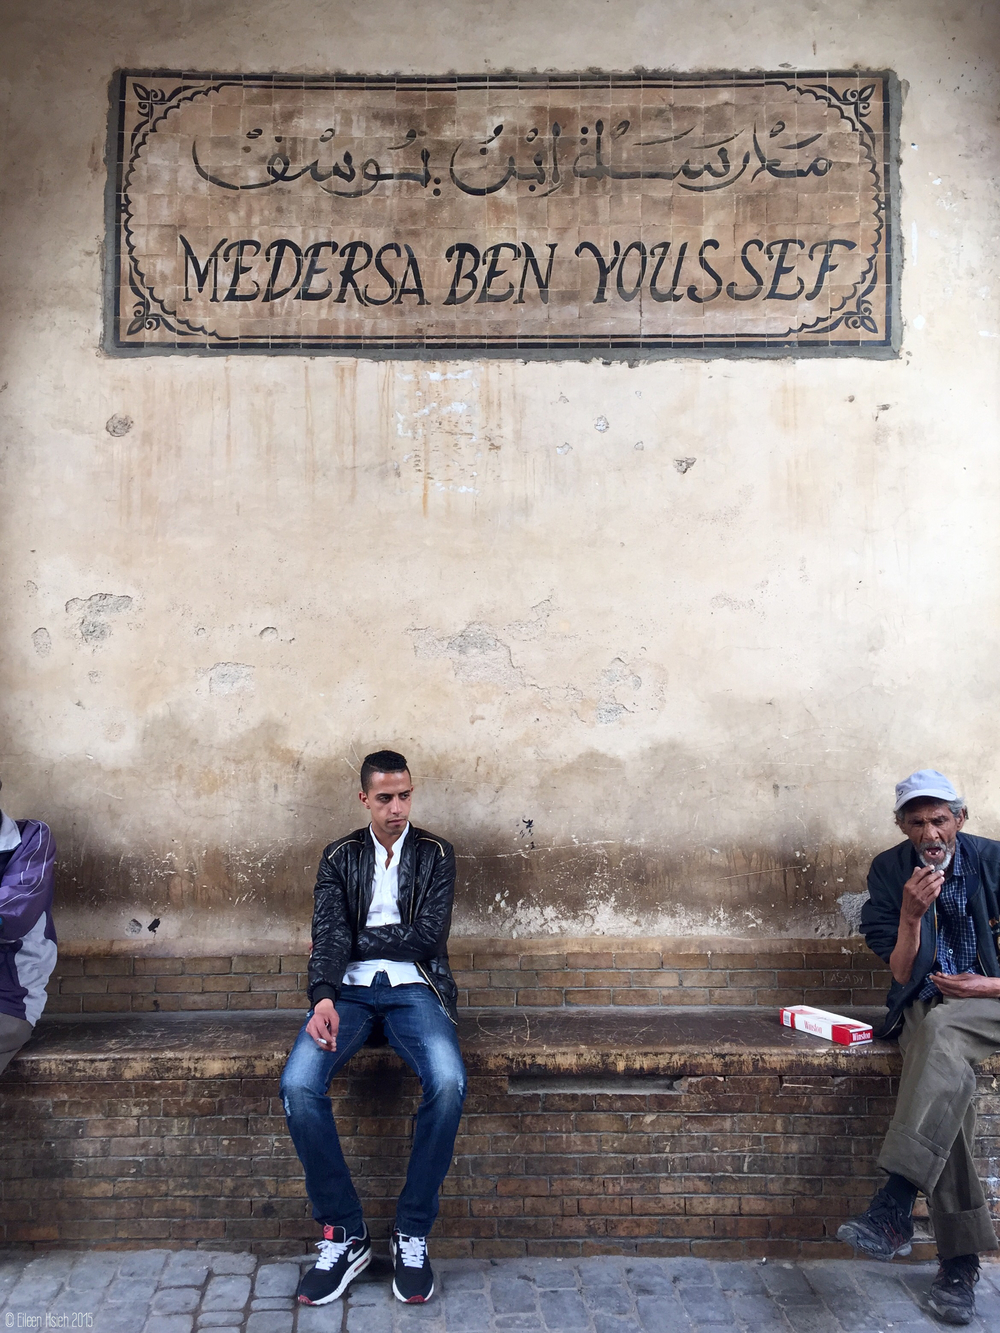 Men sitting outside of Ben Youssef Madrasa (also spelled Médersa Ben-Youssef), once the largest Islamic college in North Africa.  坐在 Ben Youssef Madrasa 外小歇的居民,這兒曾是北非最大的伊斯蘭神學院。